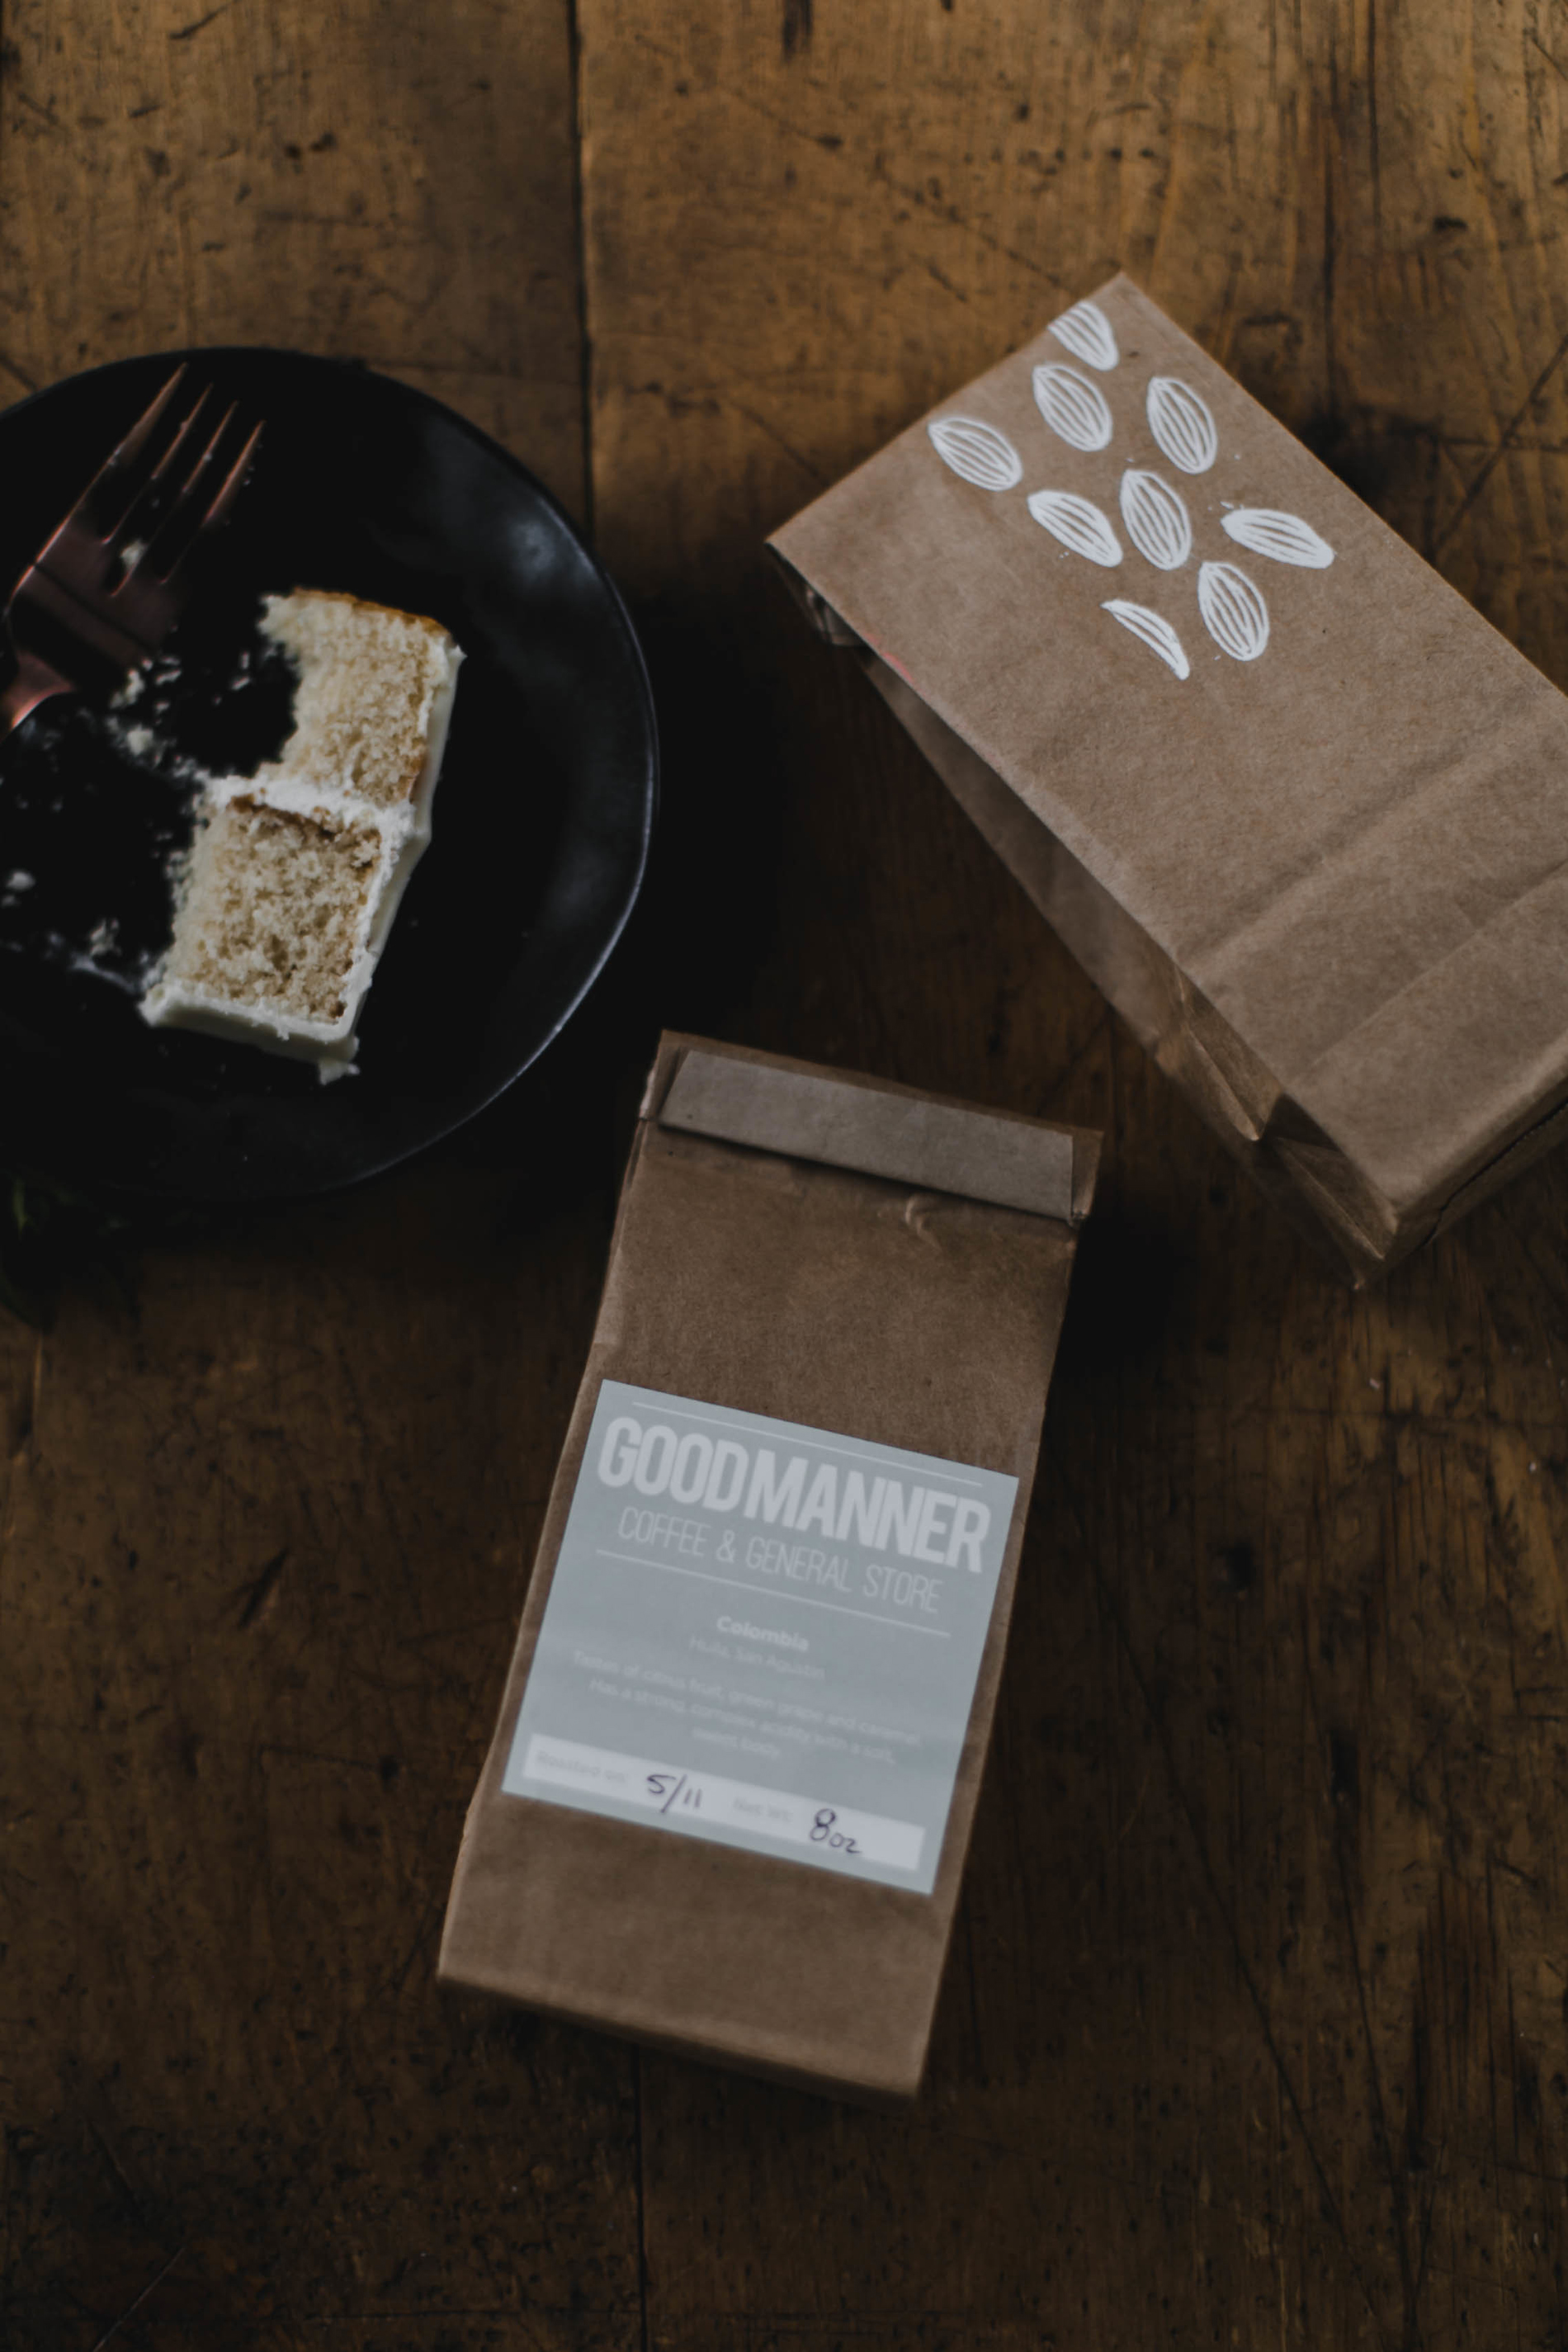 Photo by Melody Joy Co, Coffee by Good Manner Coffee, Cake by Love Sugar & Grace